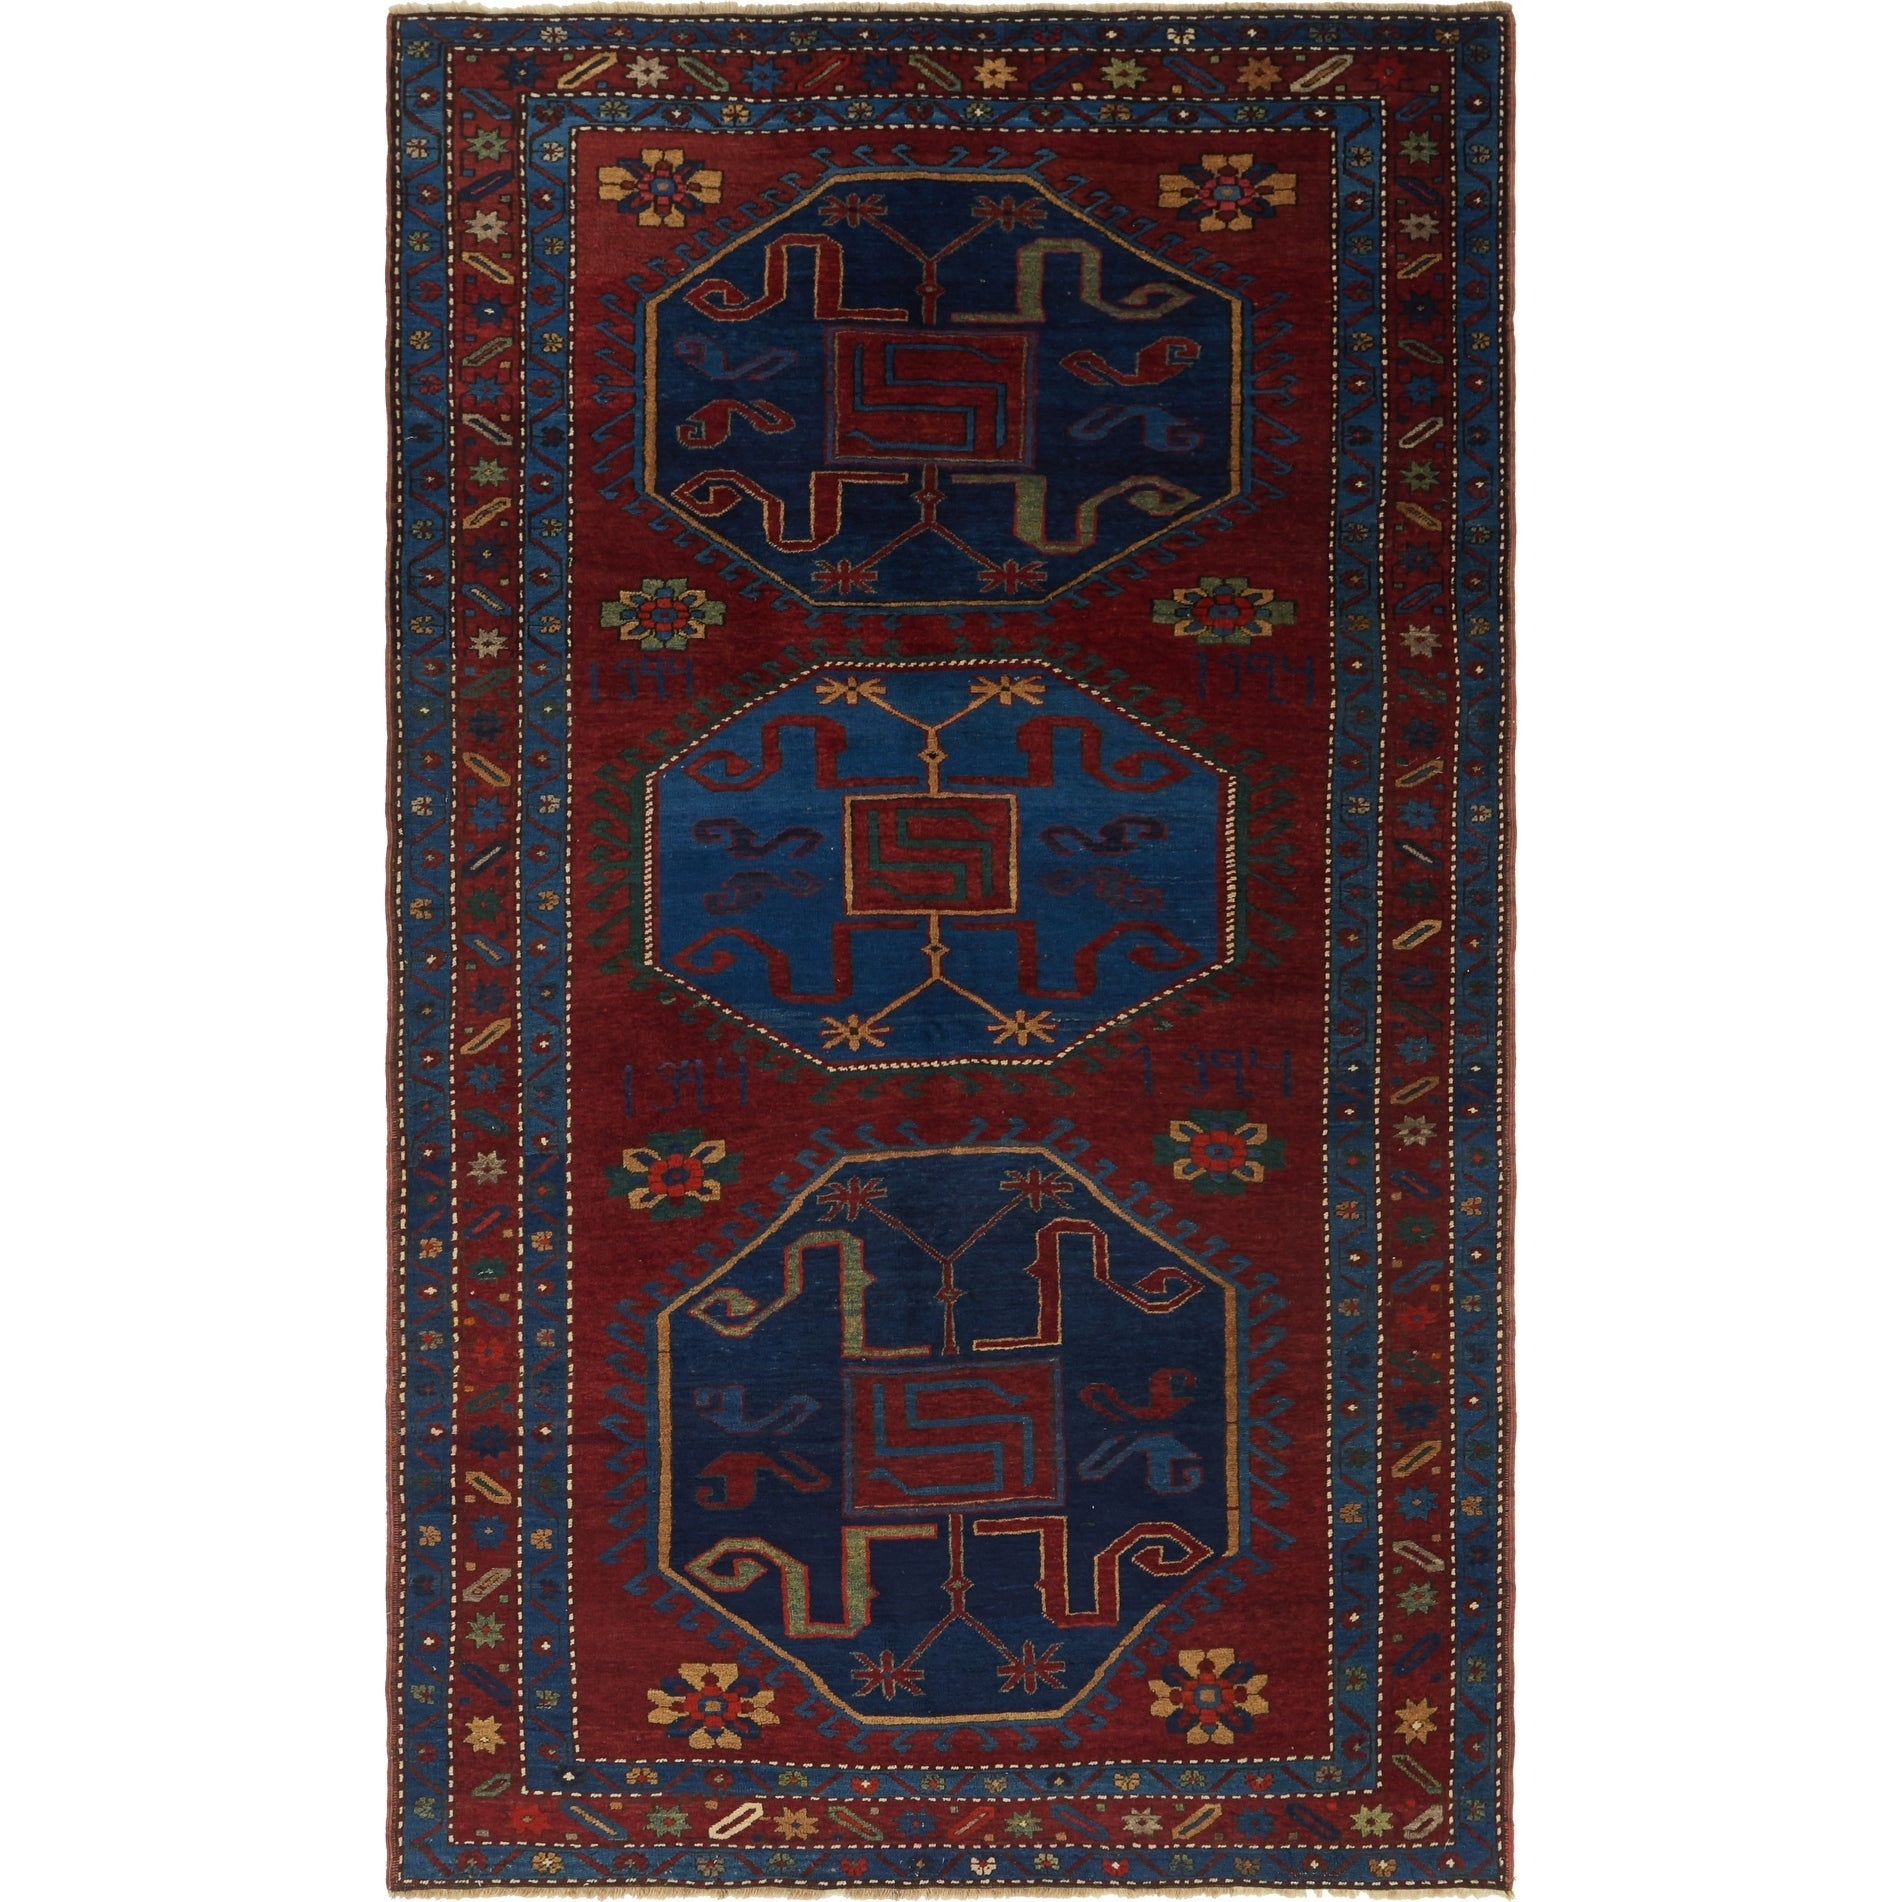 Hand Knotted Kars Wool Area Rug - 5' 4 x 9' 2 (Red - 5' 4 x 9' 2)